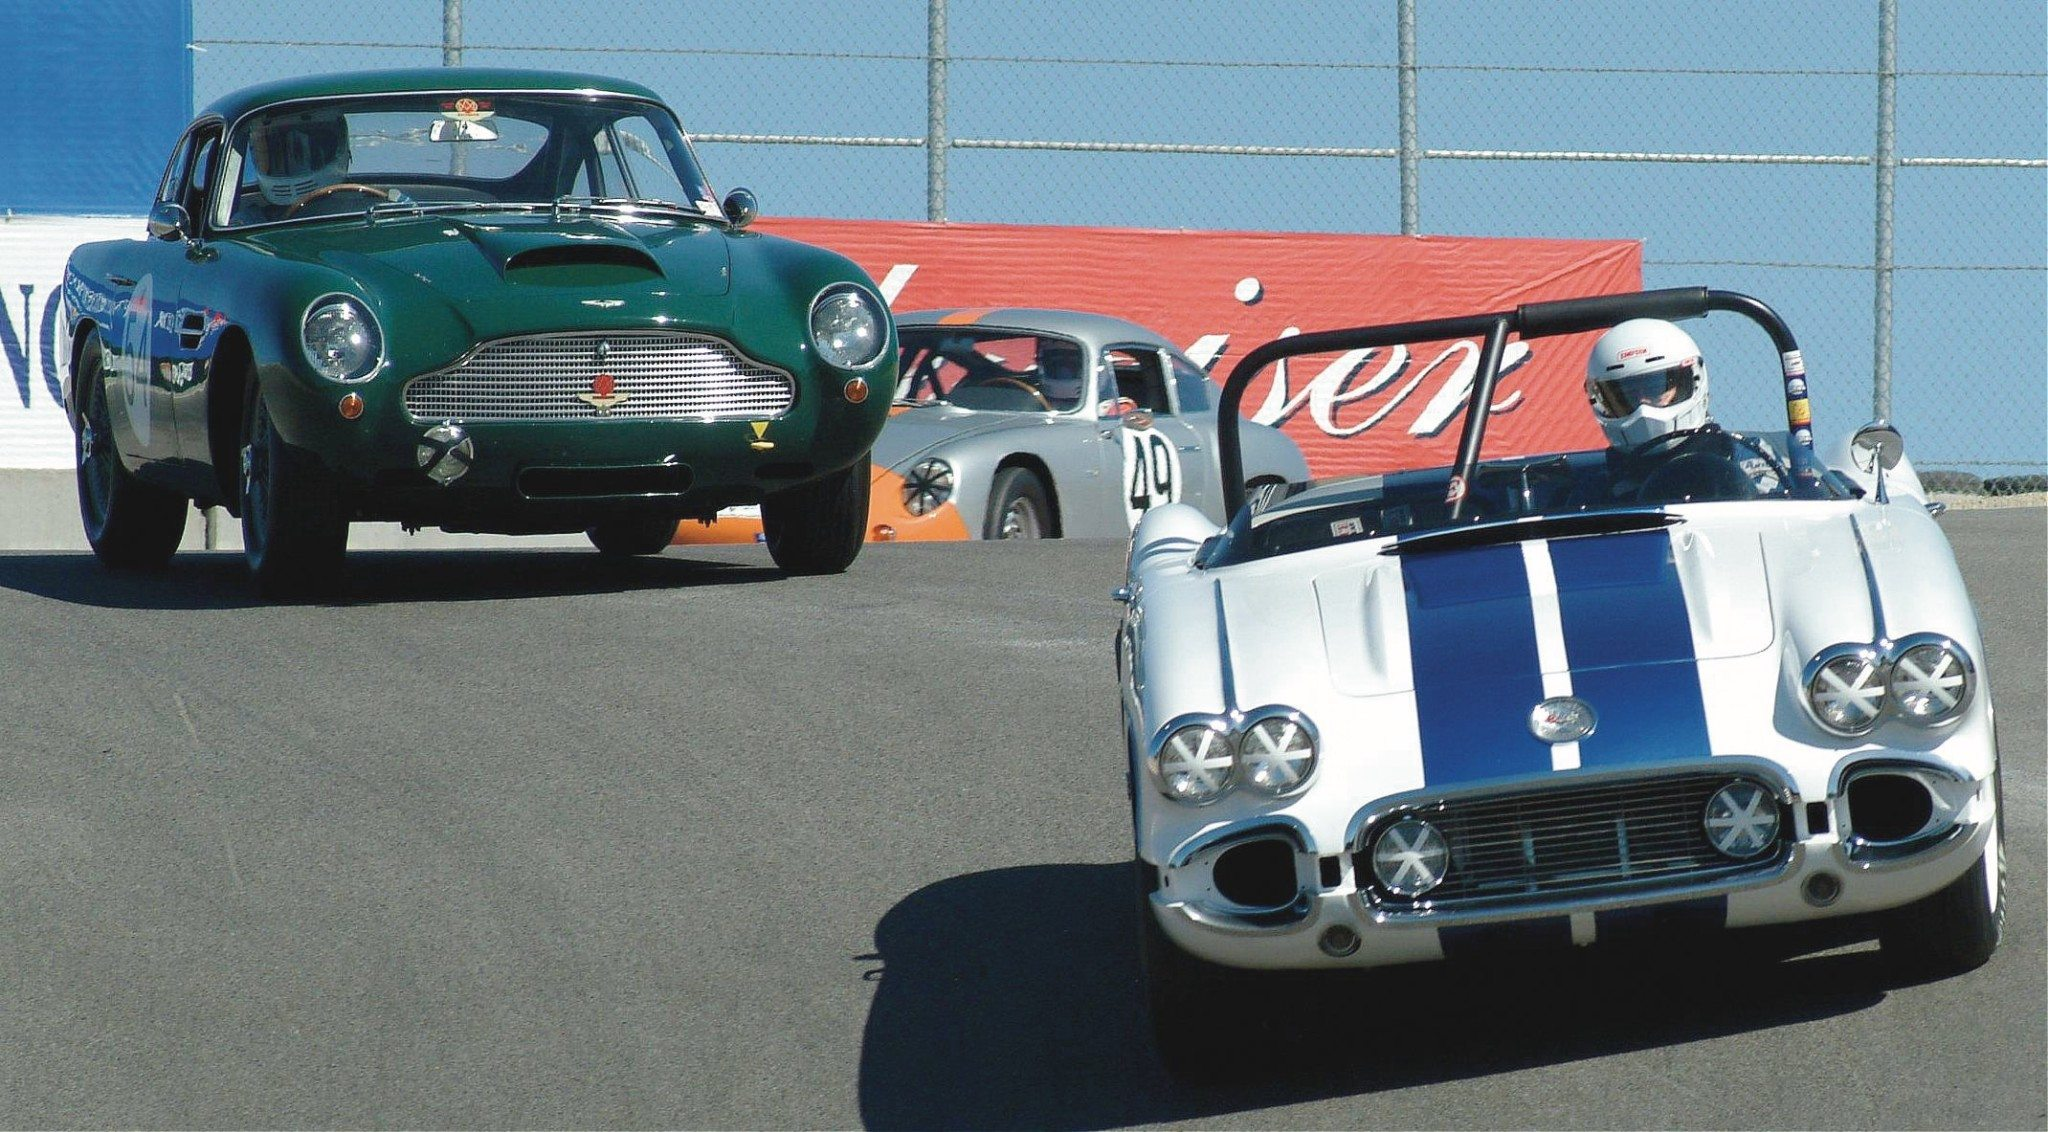 Classic Corvette, Aston Martin and Porsche Racing